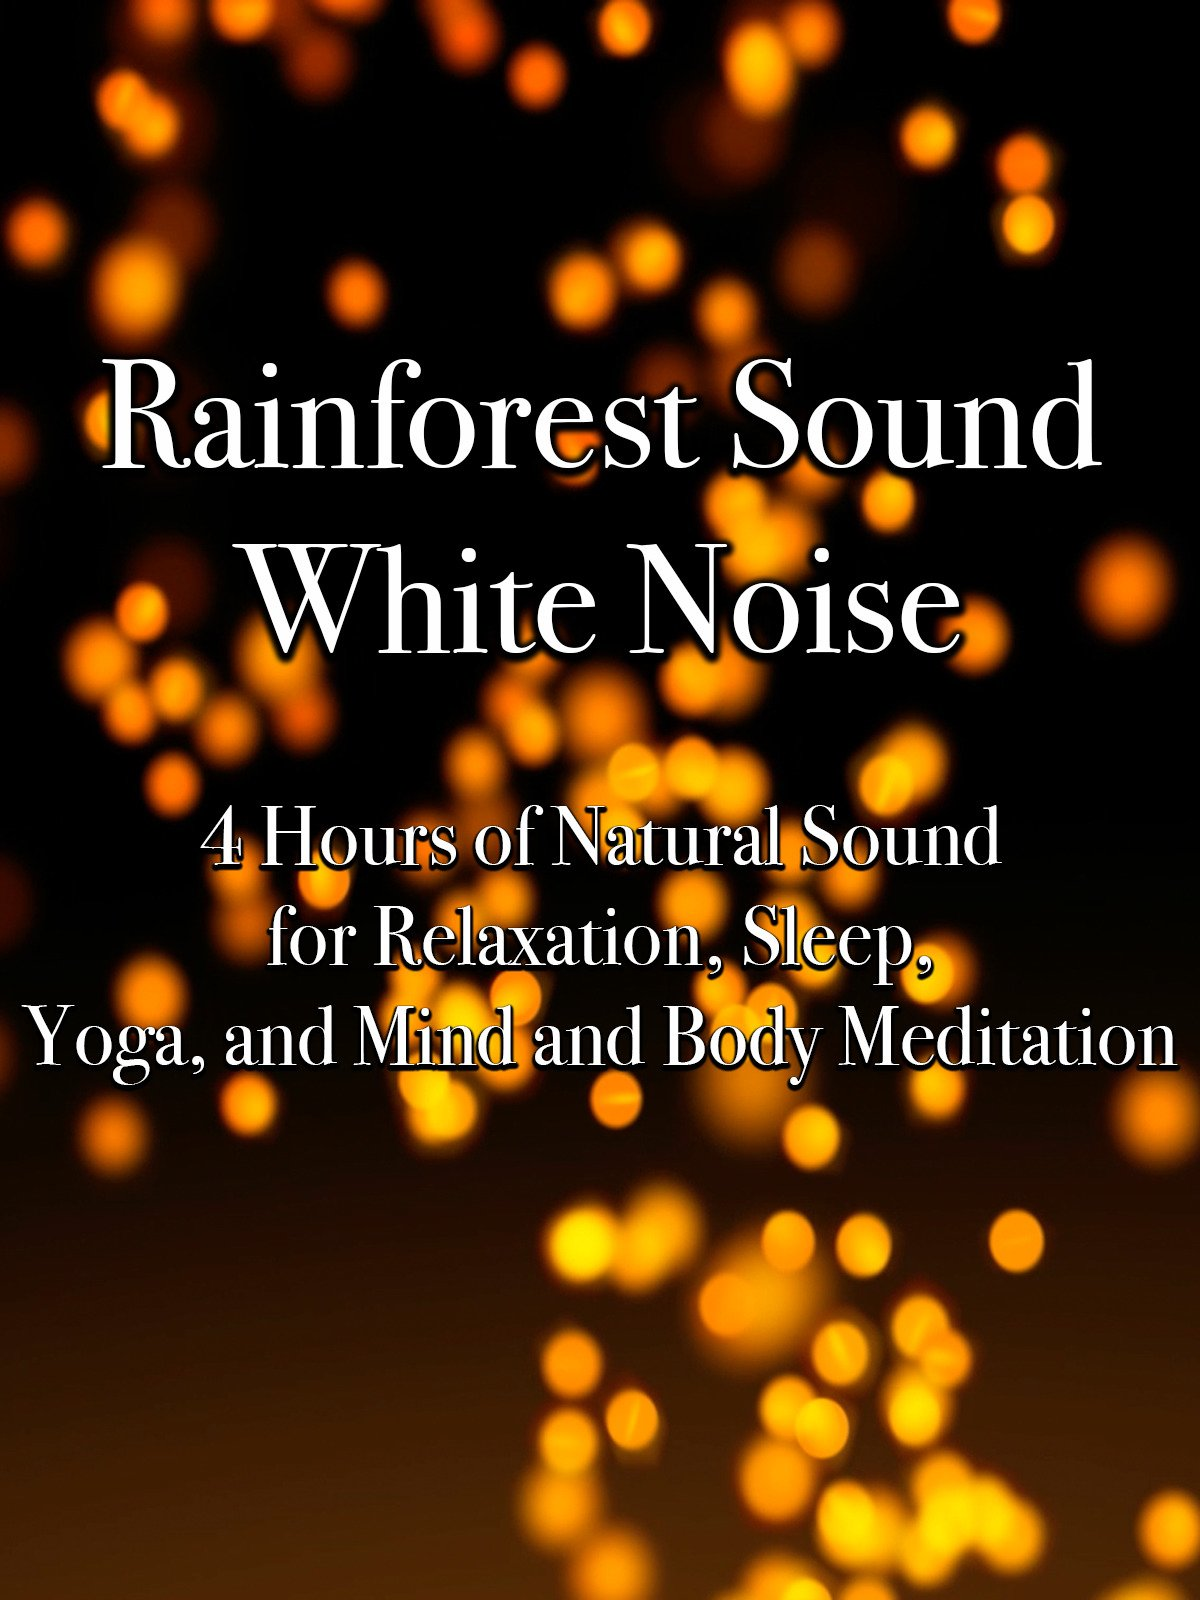 Rainforest Sound White Noise 4 Hours of Natural Sound for Relaxation, Sleep, Yoga, and Mind and Body Meditation